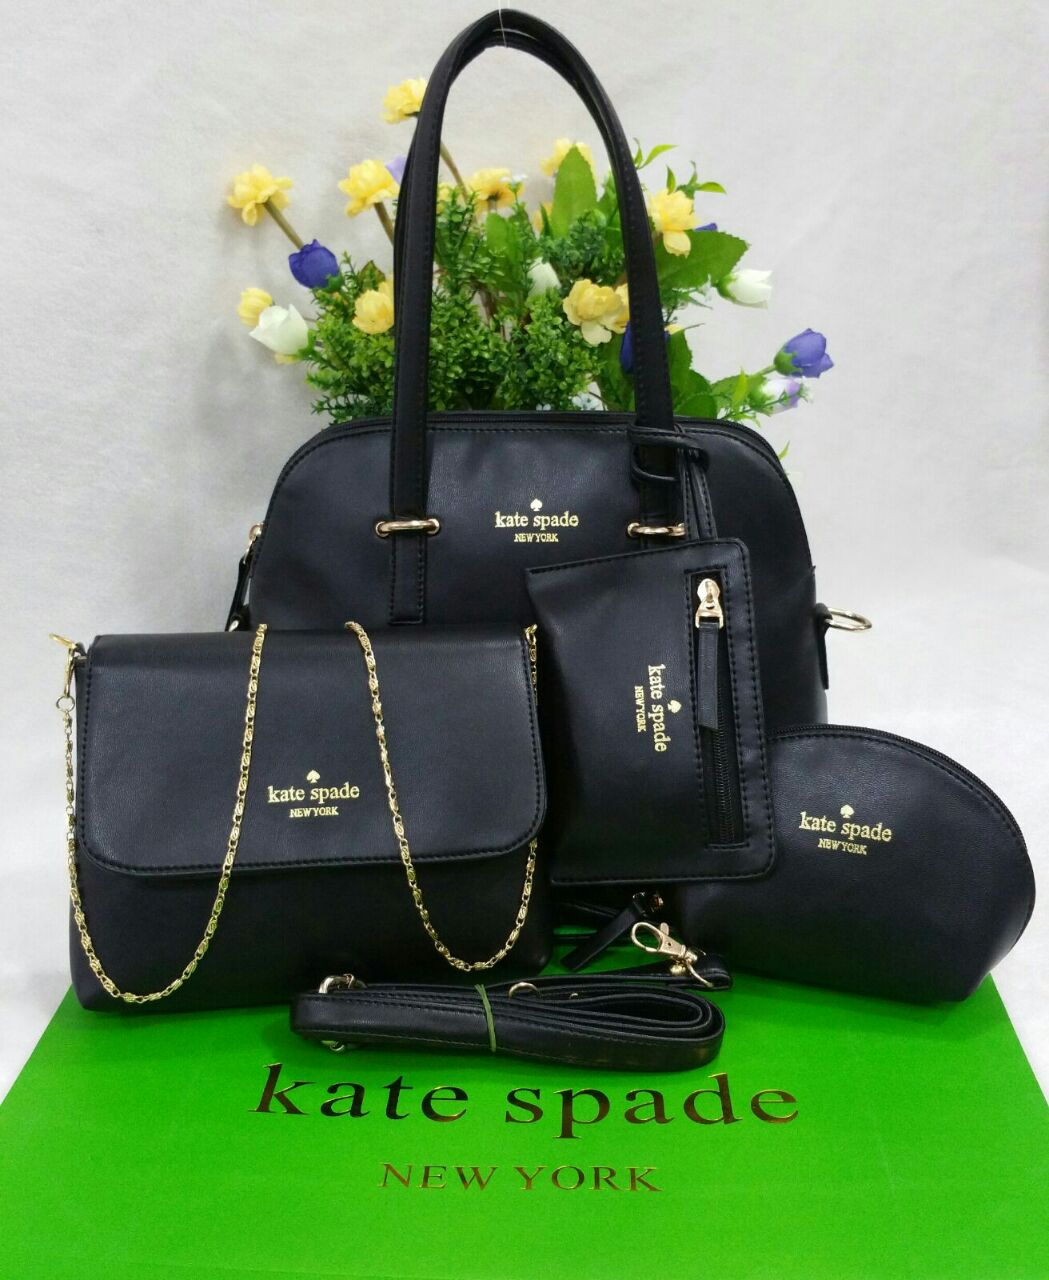 L A Times Crossword Corner  Saturday  Jul 2nd  2016  Gail Grabowski 31d  Bag lady    KATE SPADE   I knew where this     clue was going  but the  only expensive bags I could think of were Prada and Gucci